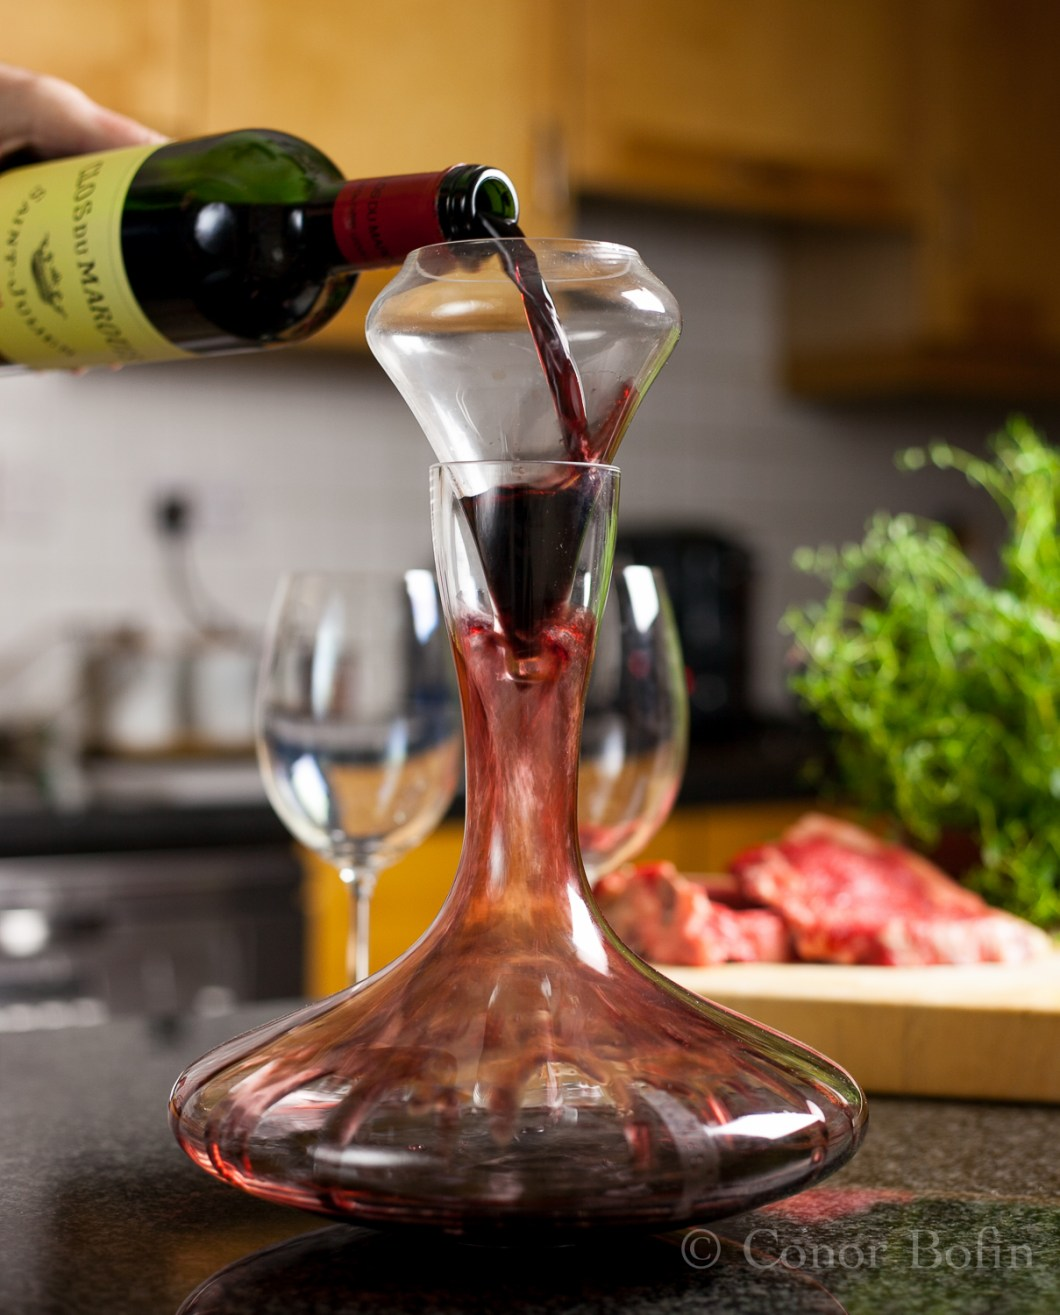 The Clos du Marquis 2004 is poured through an aerator into the decanter.